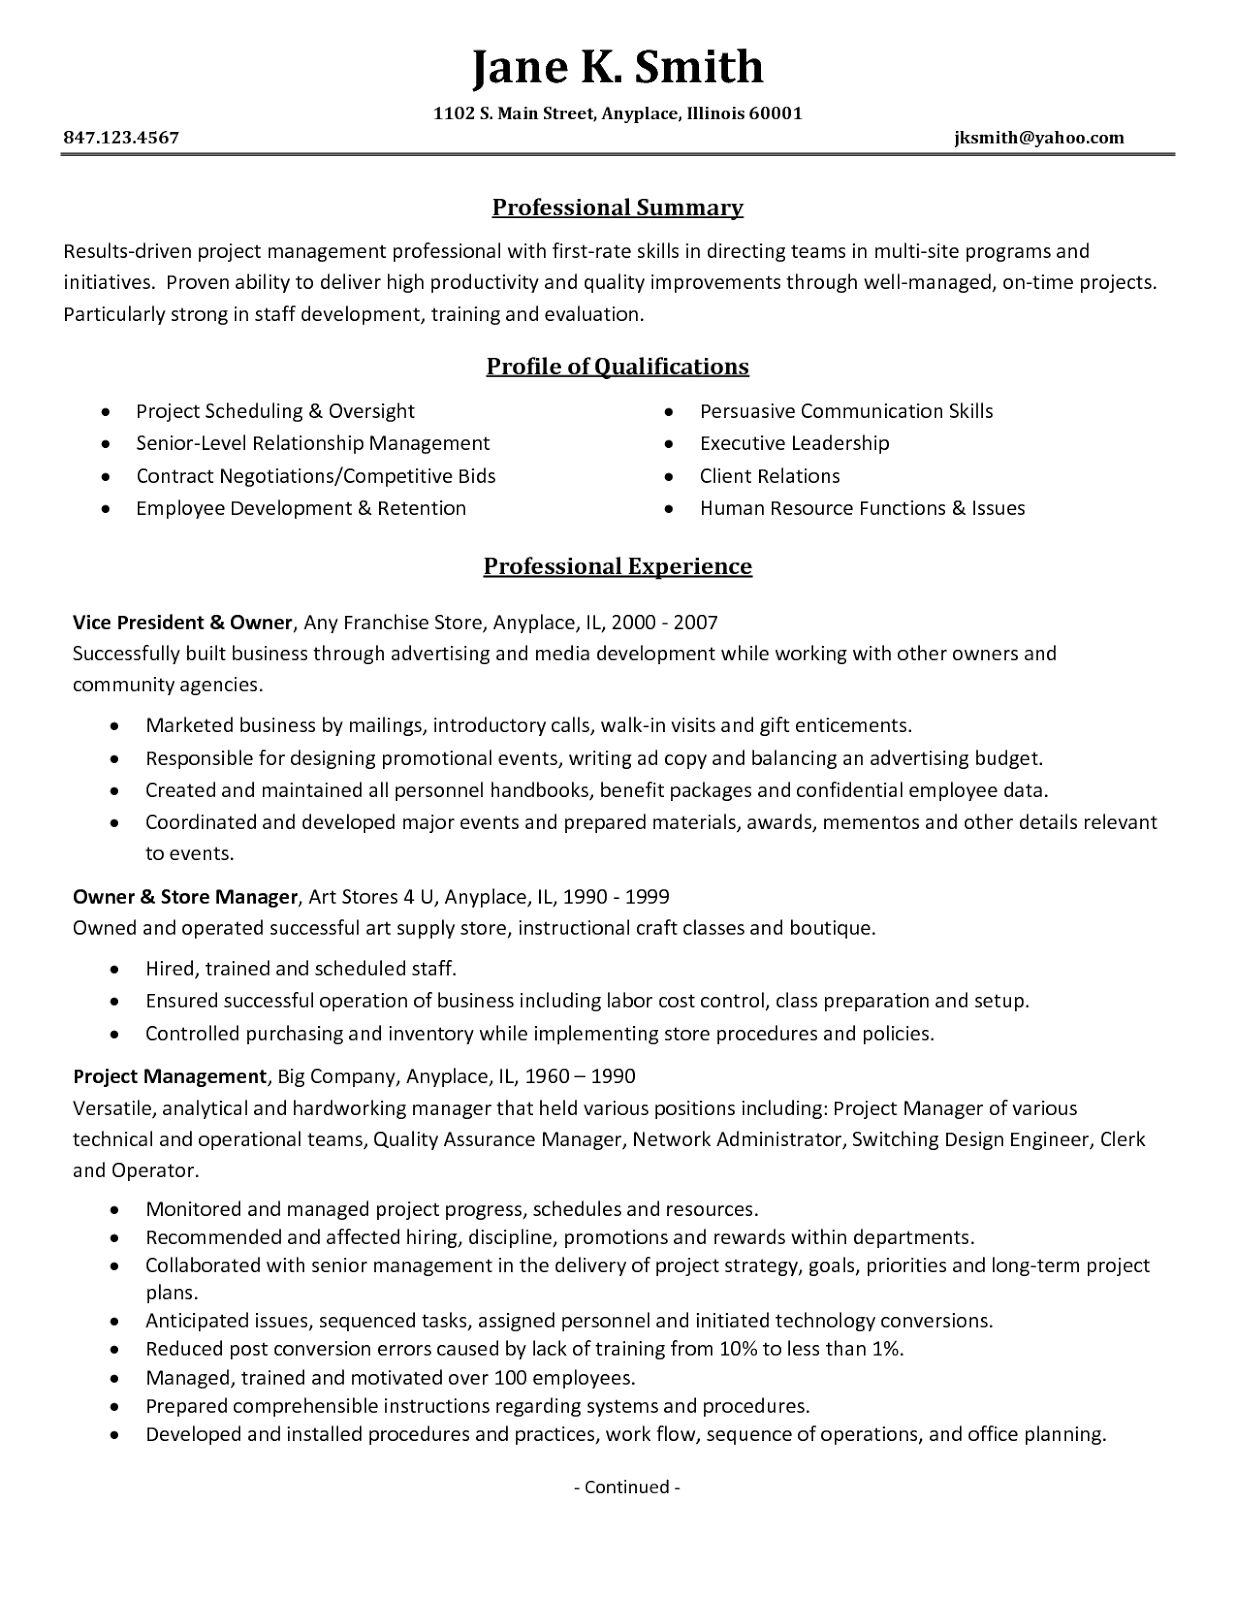 sample resume construction project manager project manager resume construction resume sample letter format project manager resume construction resume sample letter format